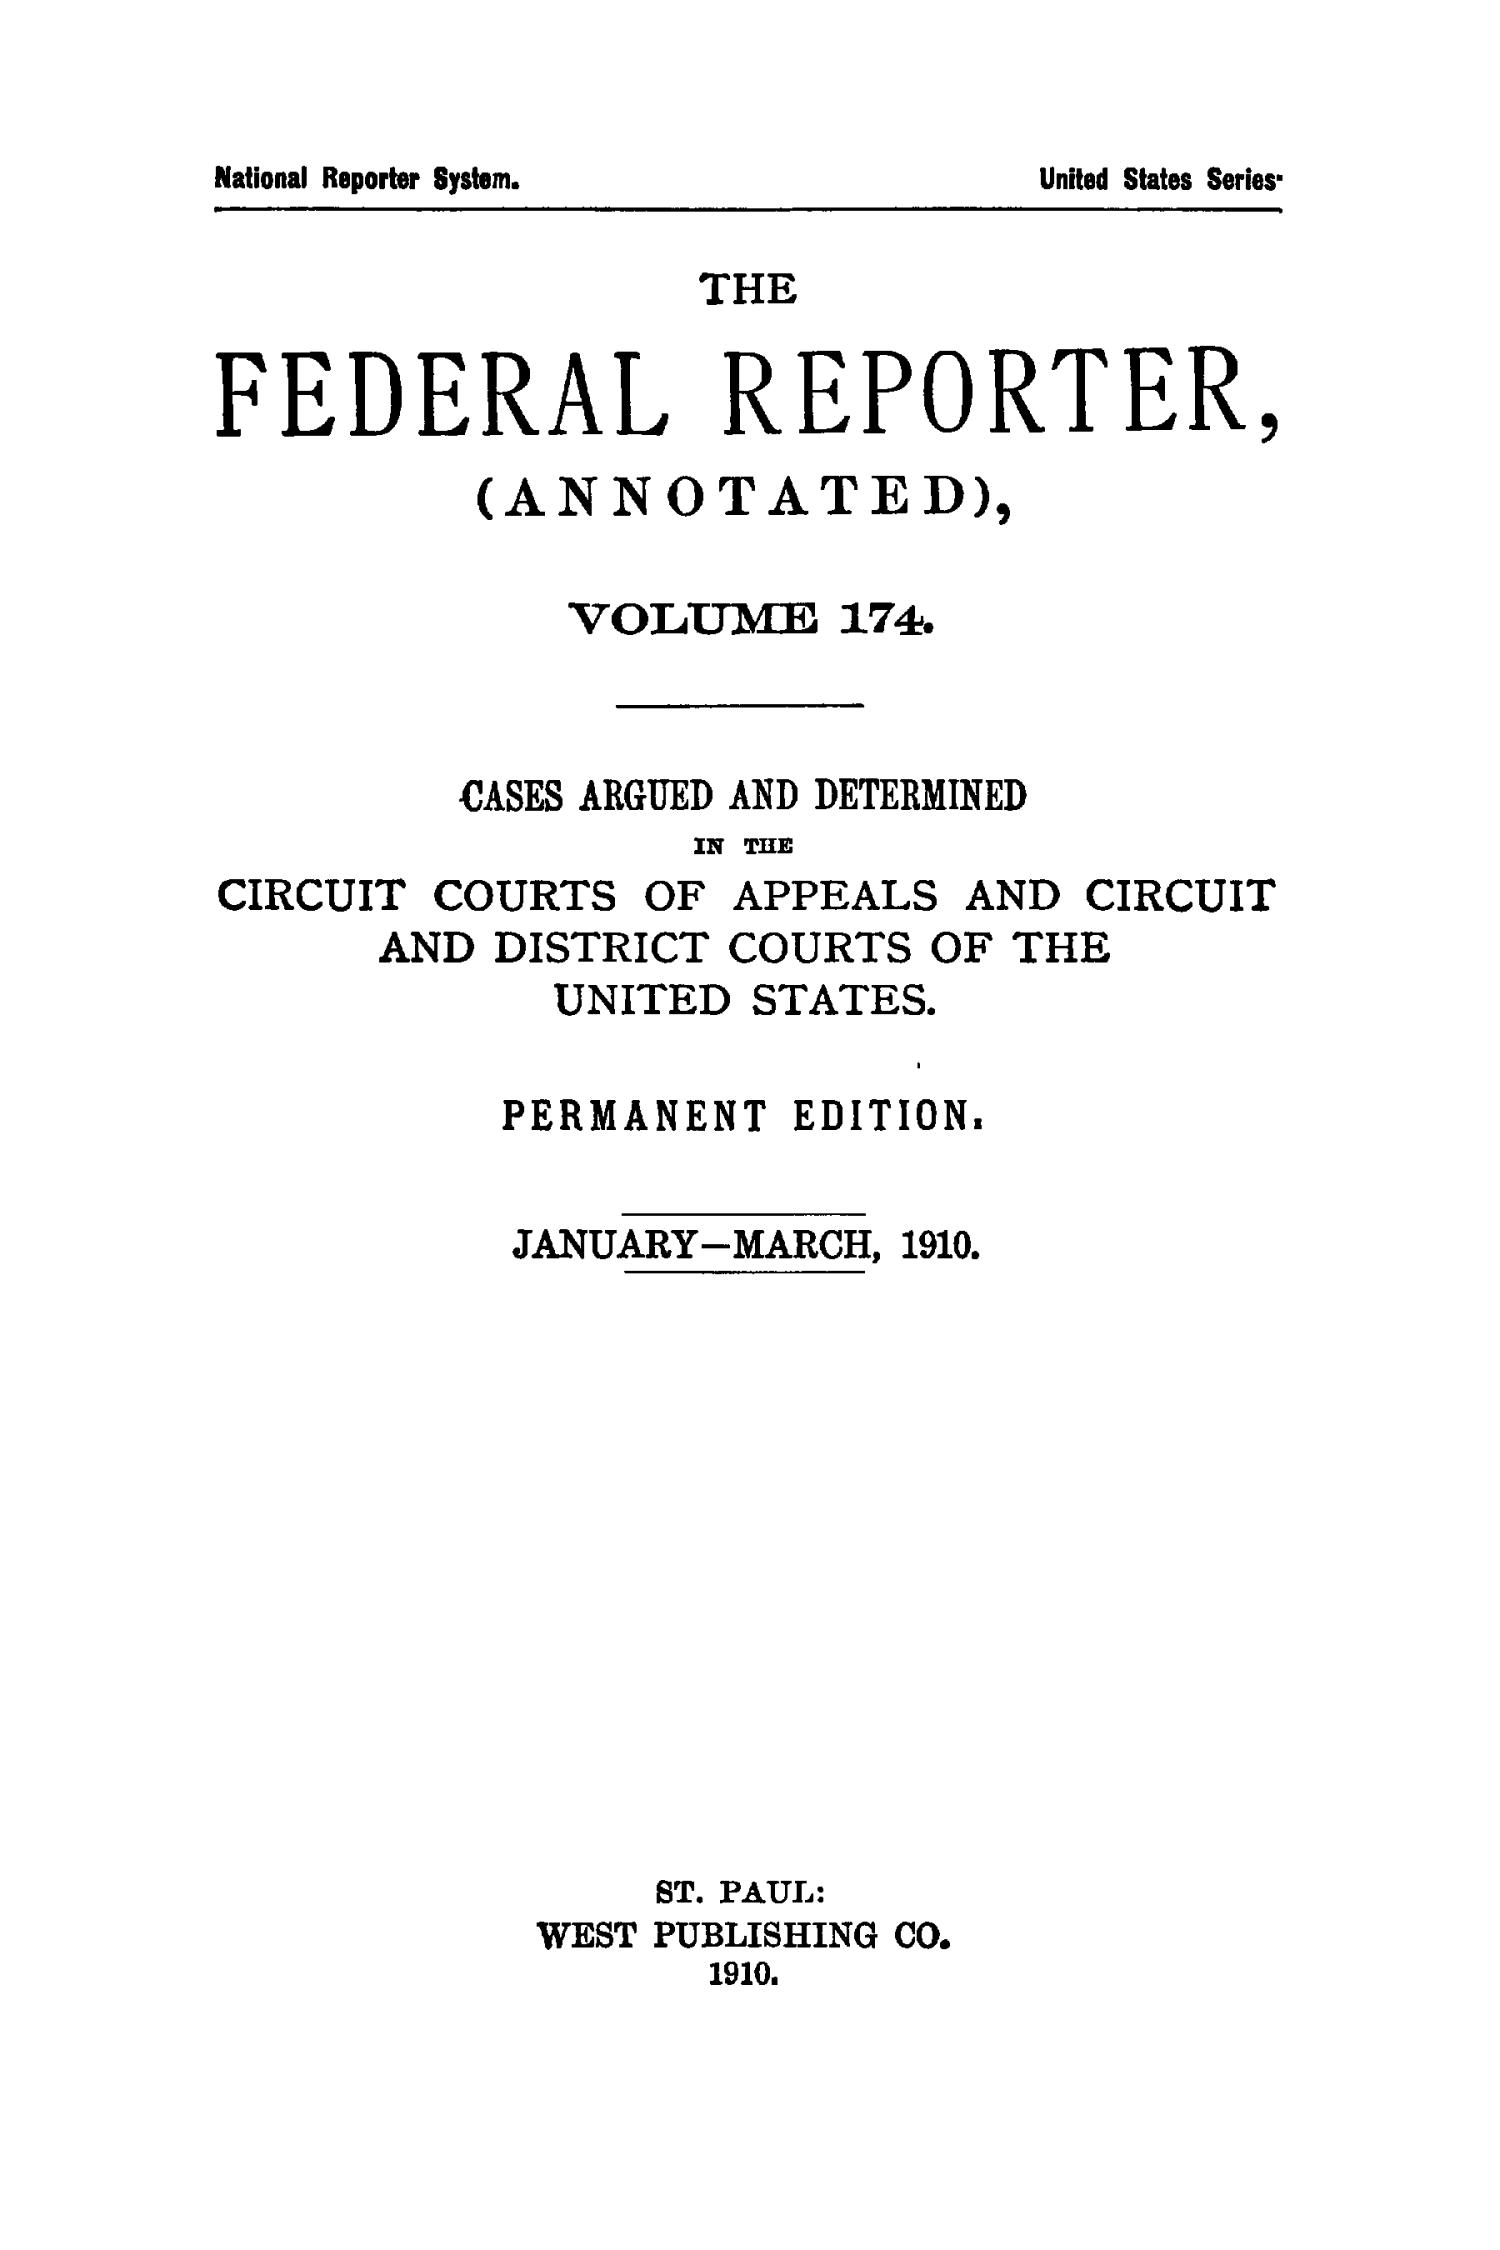 The Federal Reporter (Annotated), Volume 174: Cases Argued and Determined in the Circuit Courts of Appeals and Circuit and District Courts of the United States. January-March, 1910.                                                                                                      Title Page